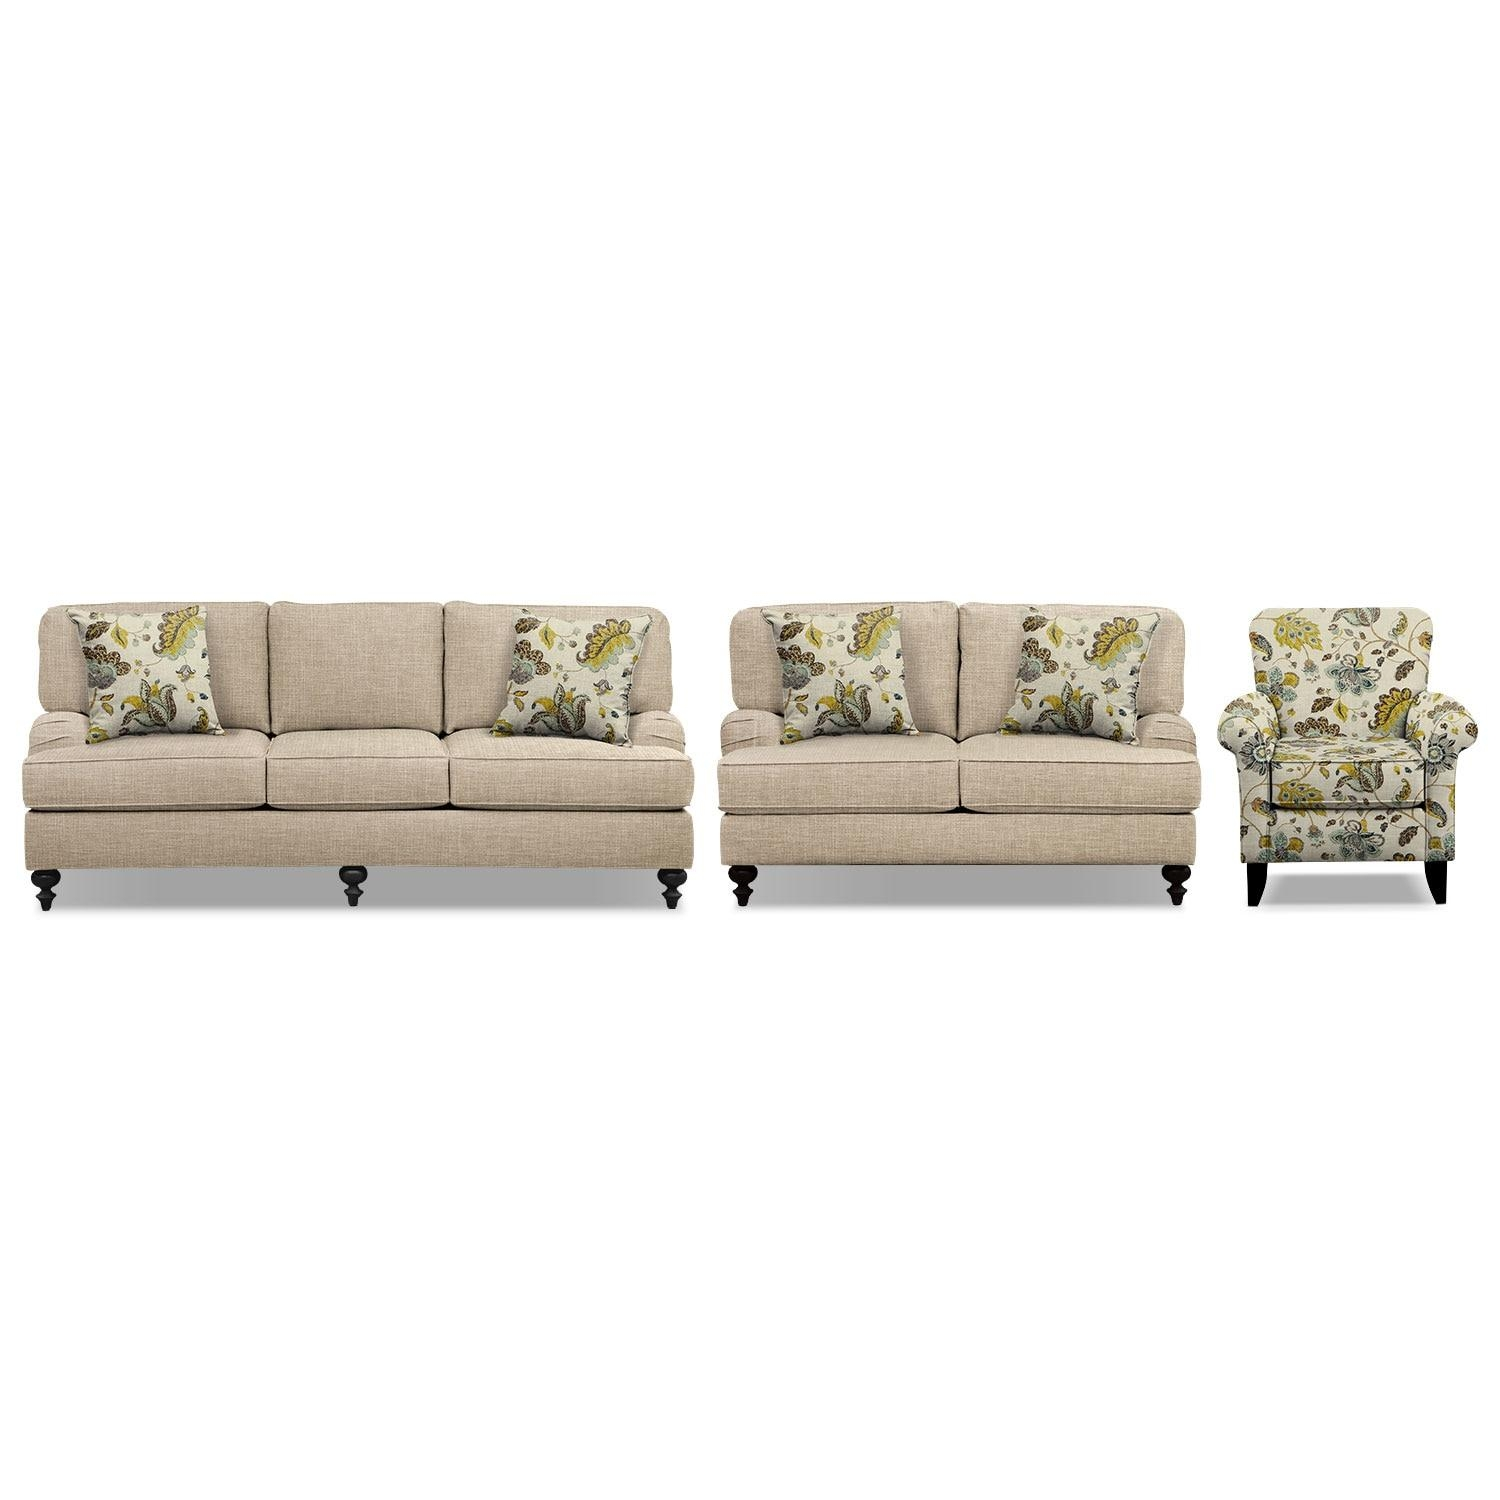 "Avery Taupe 86"" Memory Foam Sleeper Sofa, 62"" Sofa And Accent With Sofa And Accent Chair Set (View 15 of 20)"